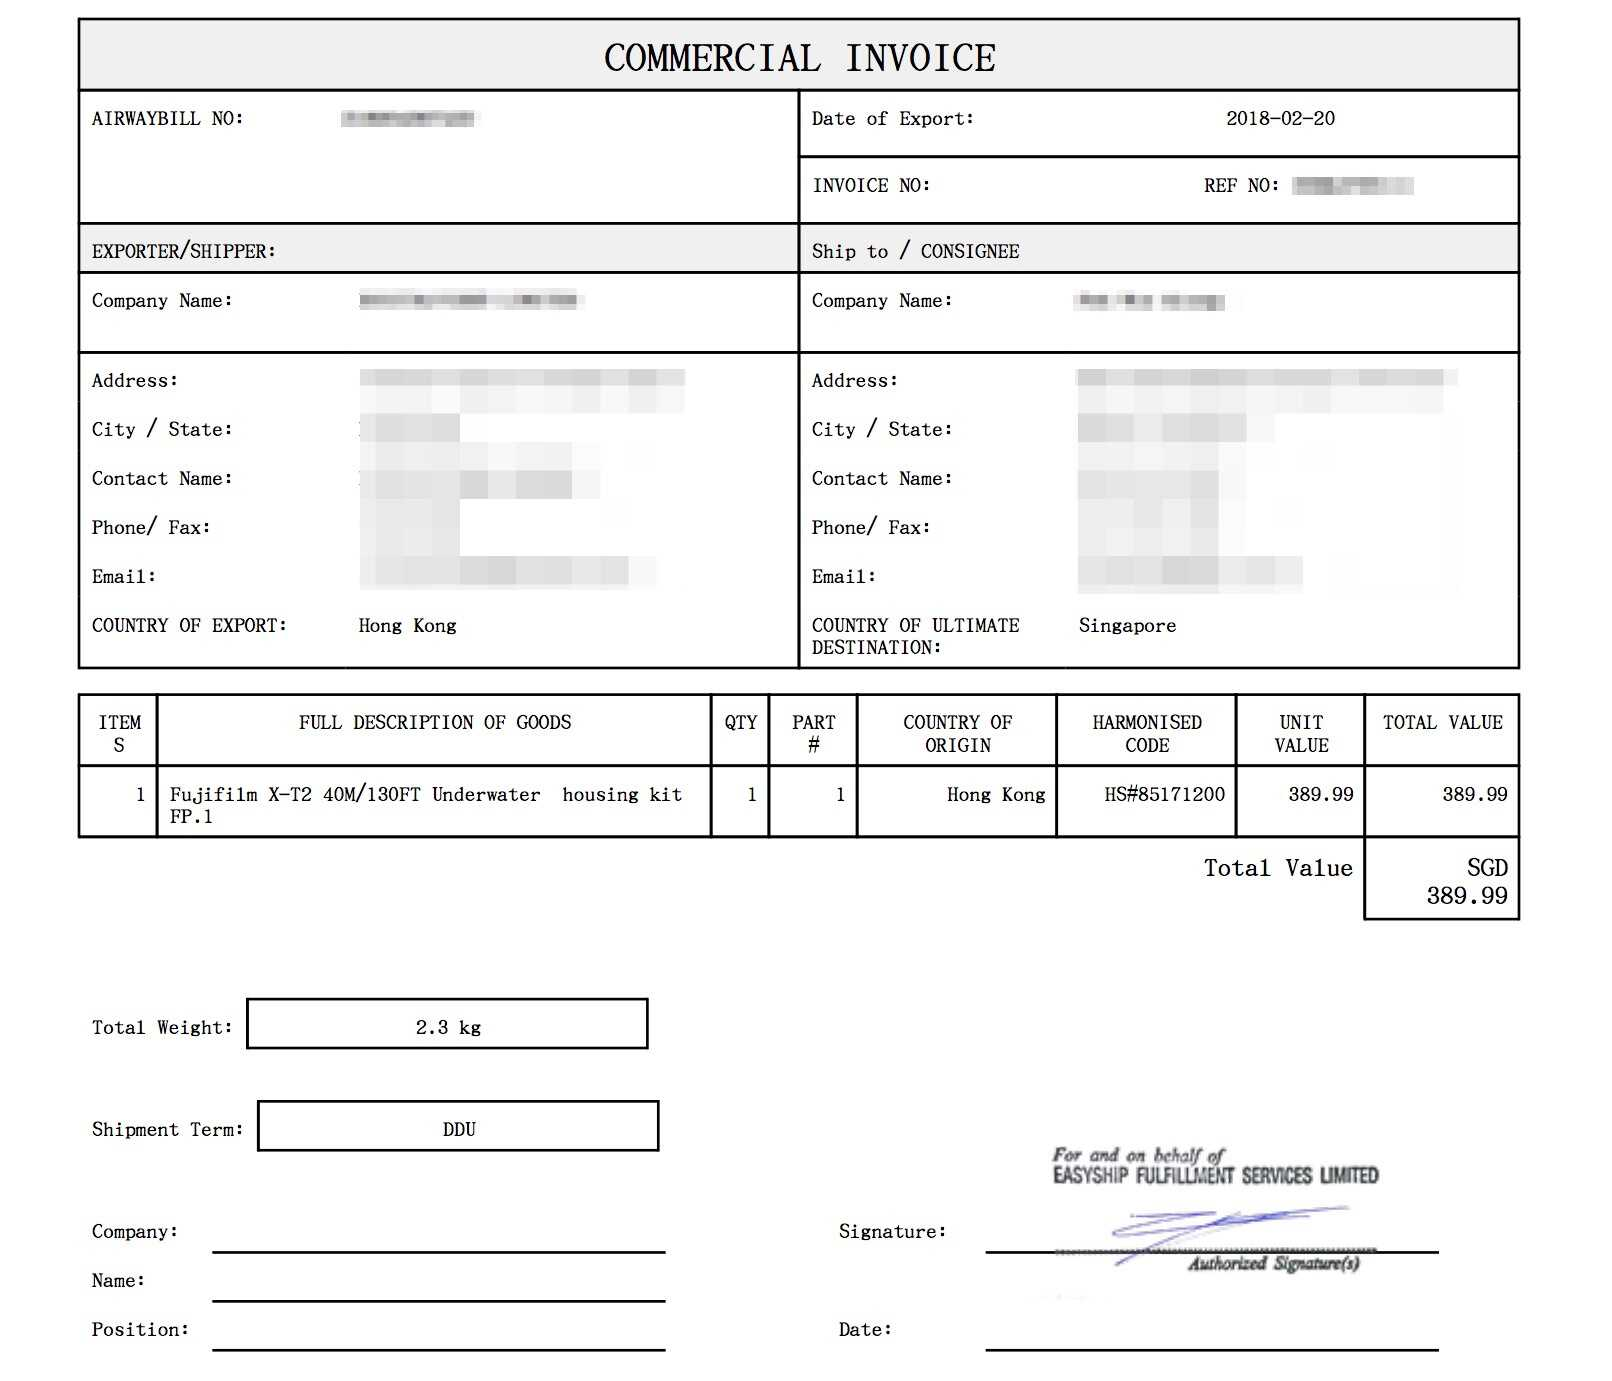 Sample Commercial Invoice Easyship